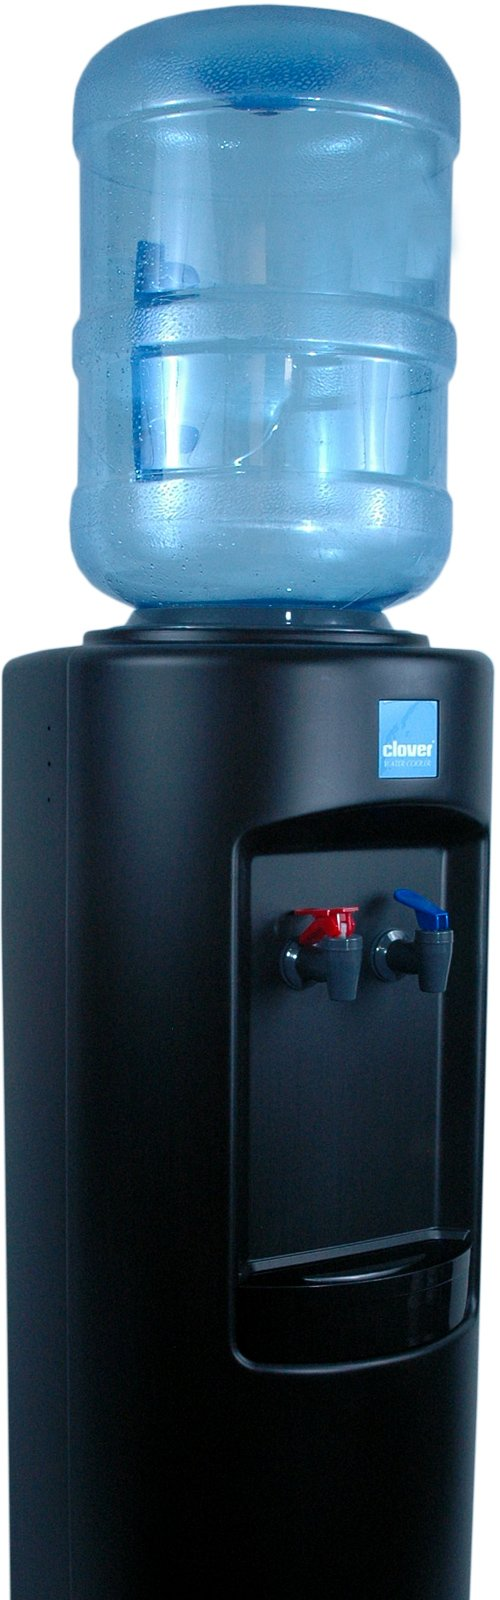 Clover Bottled Water Cooler Black